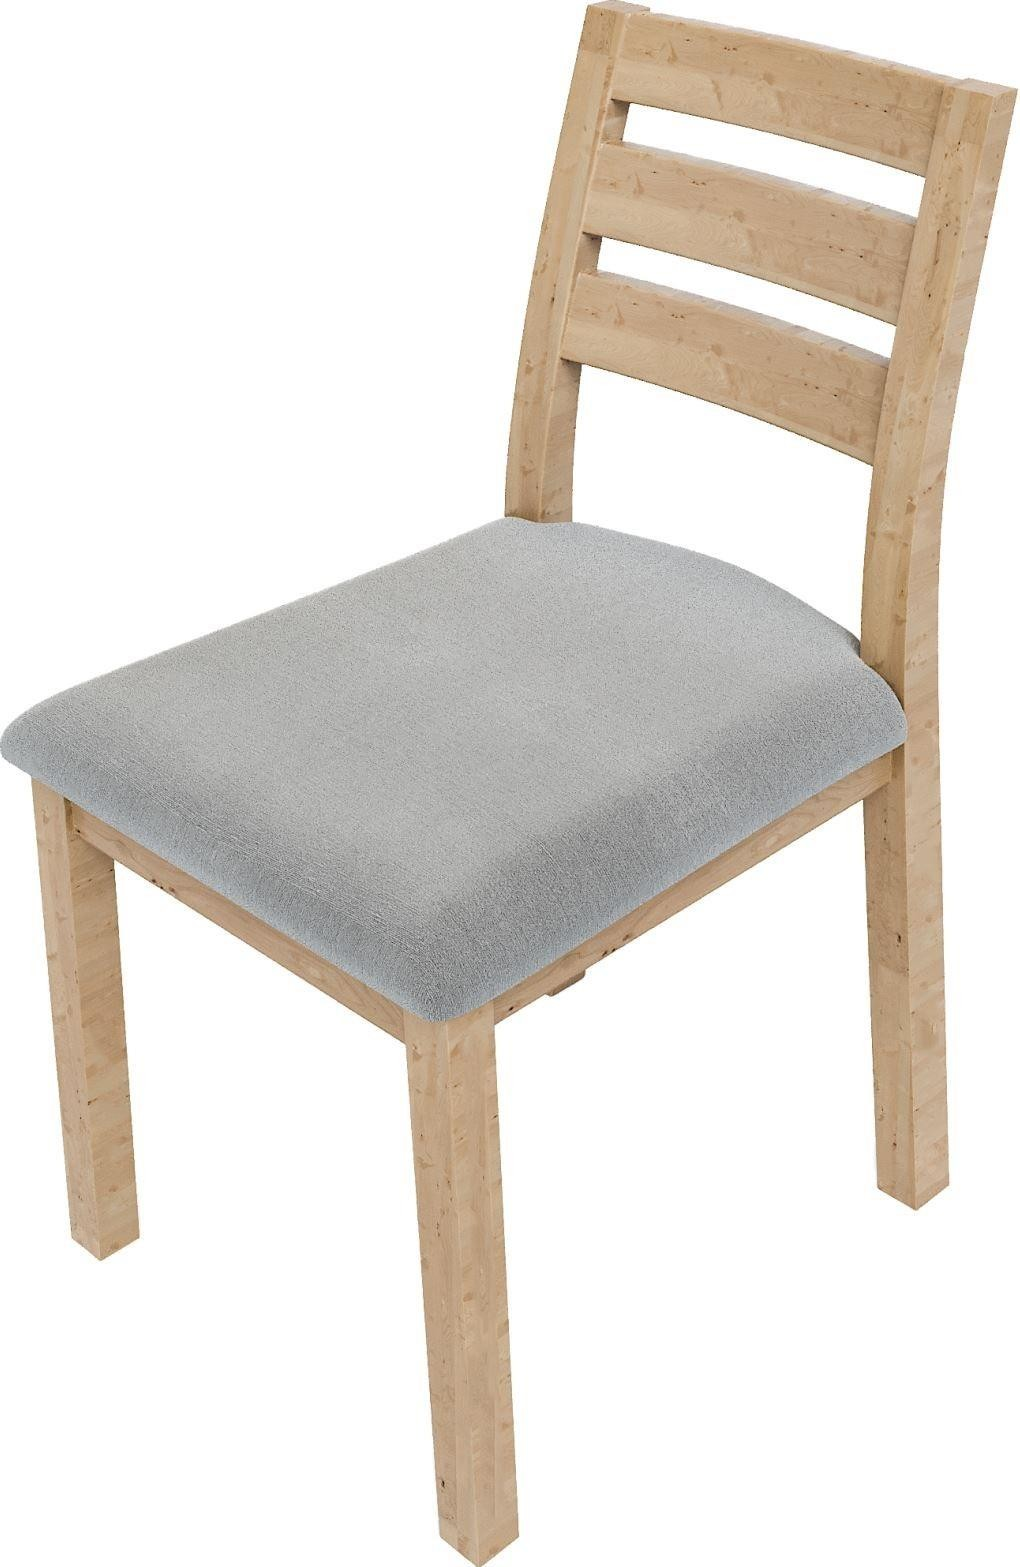 Lews Dining Chair